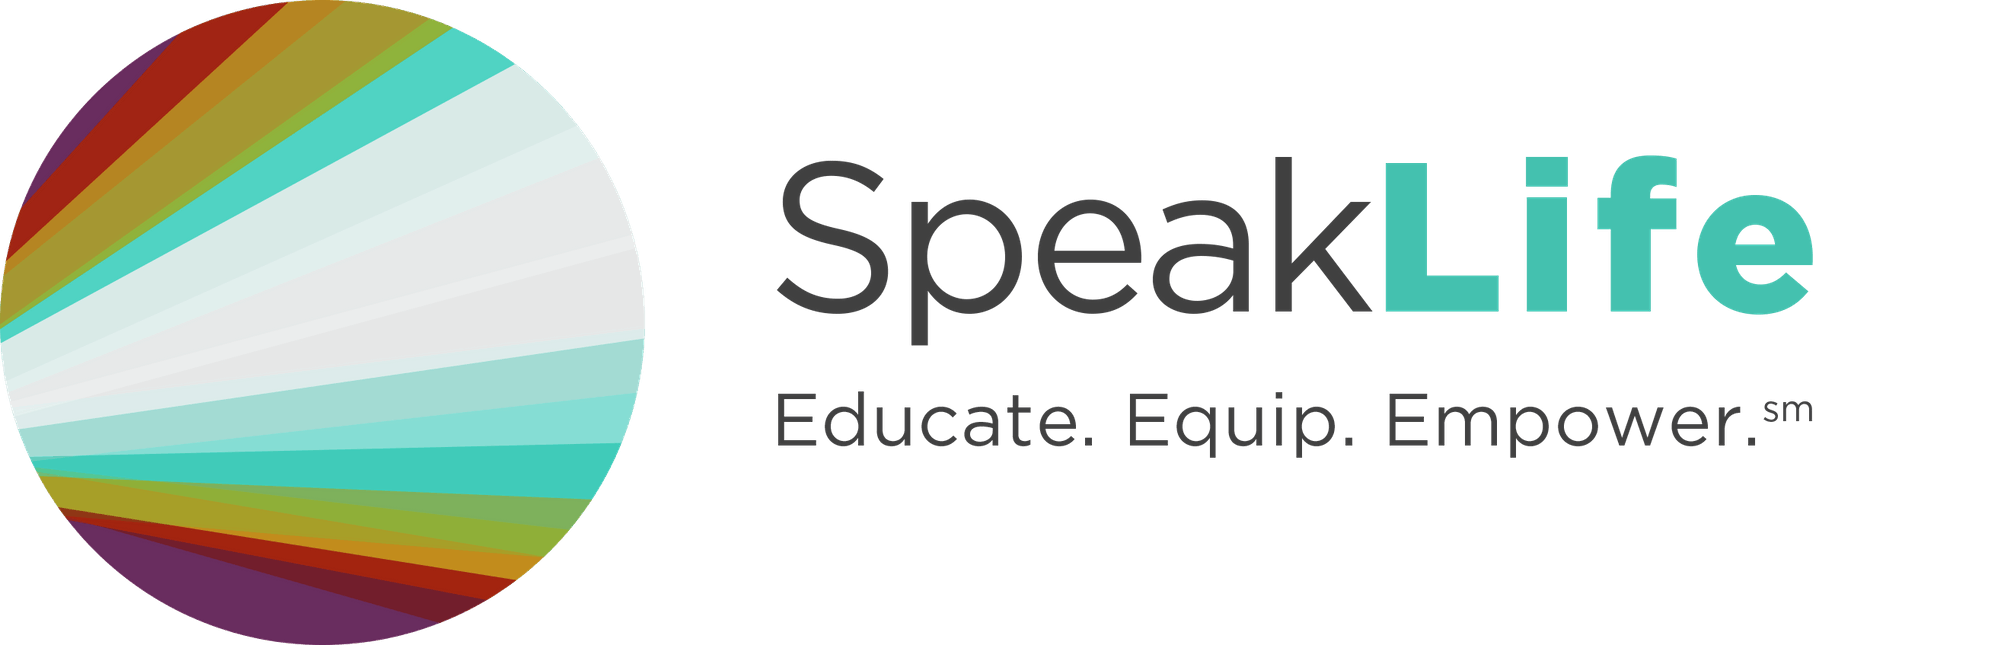 SpeakLife - SmarterU LMS - Online Training Software